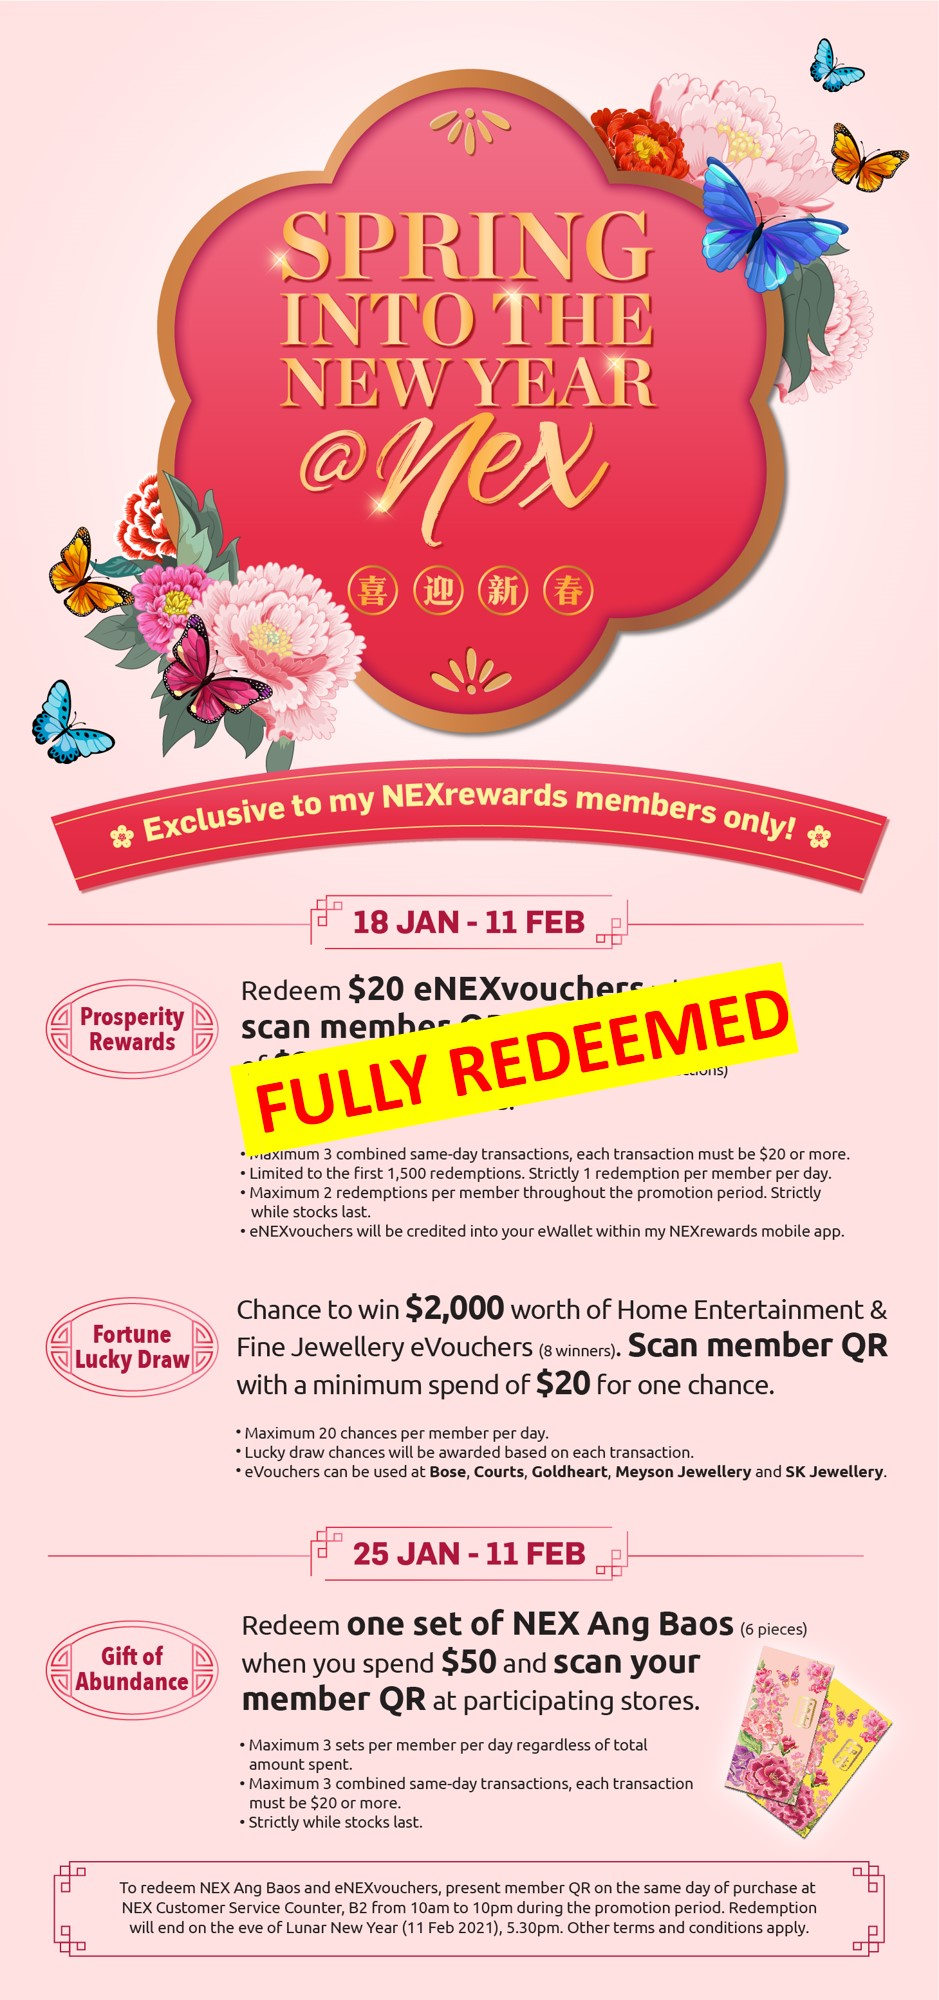 Spring Into The New Year_Rewards fully redeemed